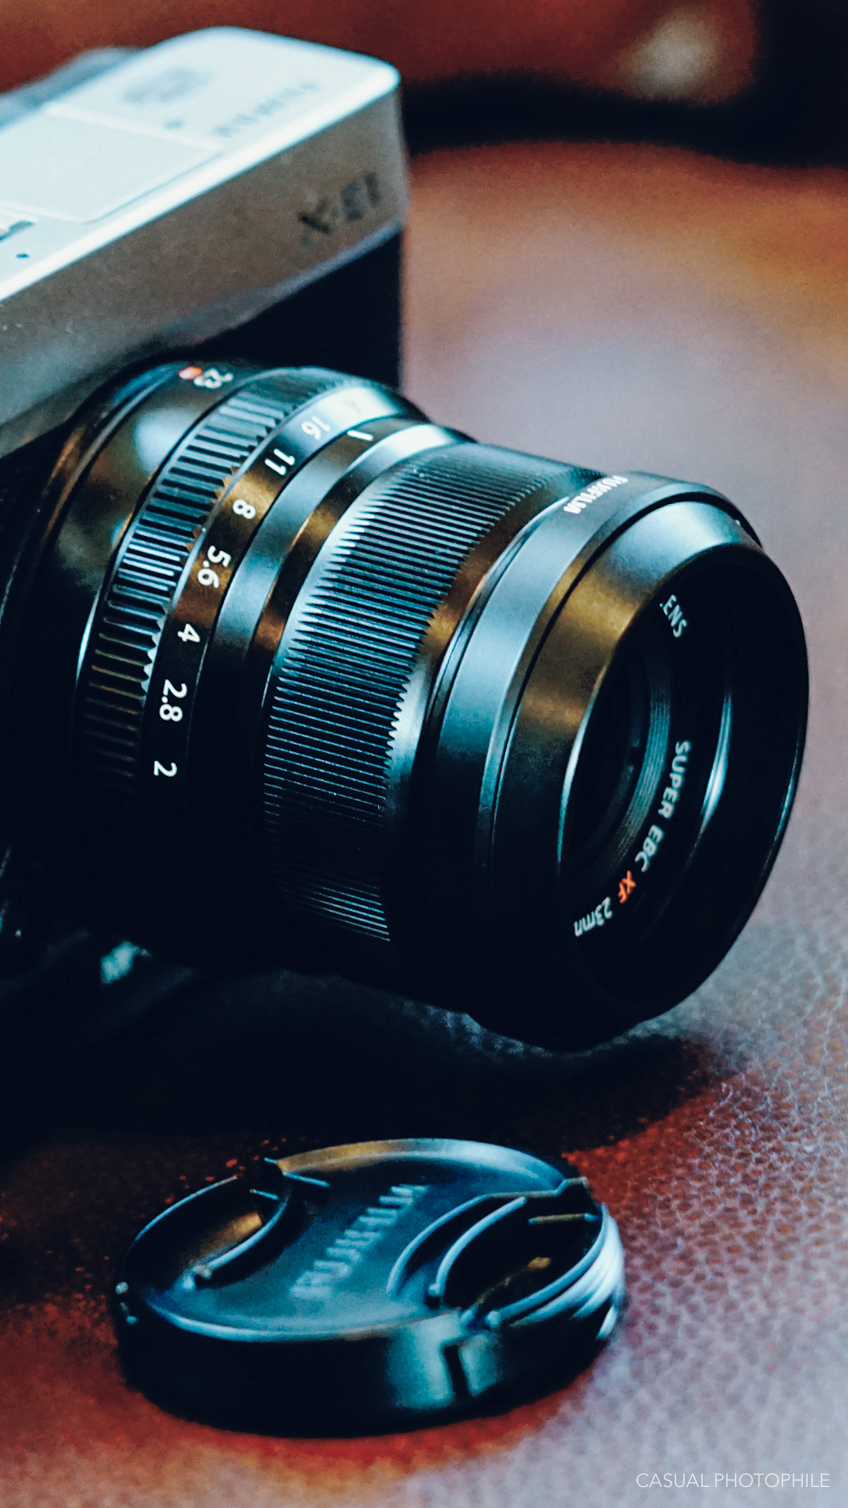 Fujifilm XF 23mm F/2 WR Lens Review - The Fuji X Series